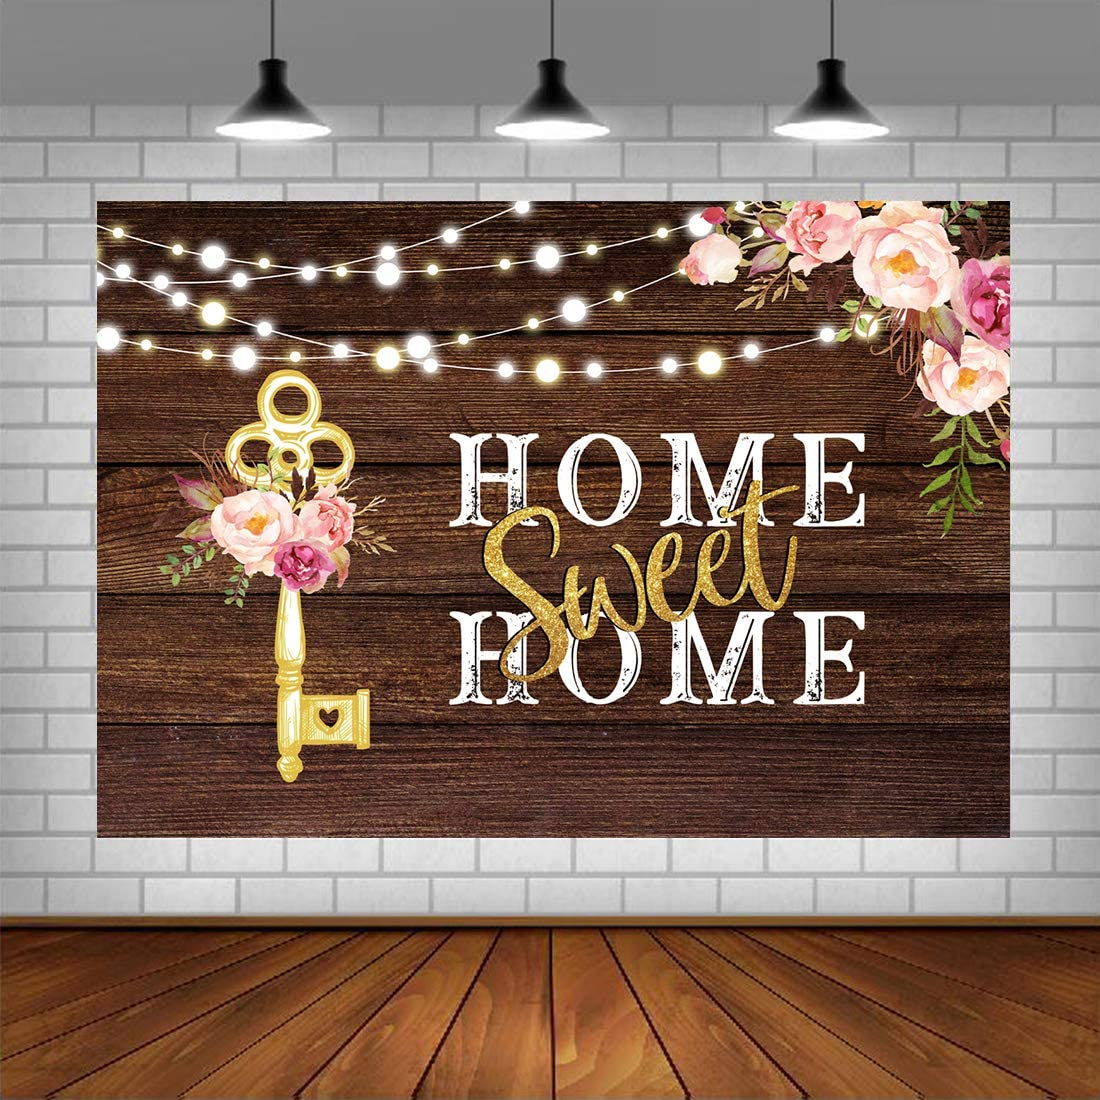 Housewarming Backdrops Pink Floral Sweet Home Key Shining Lights Background for New House Party Decorations Wooden Floor Wedding Photo Booth Props Cake Table Supplies 5x3ft